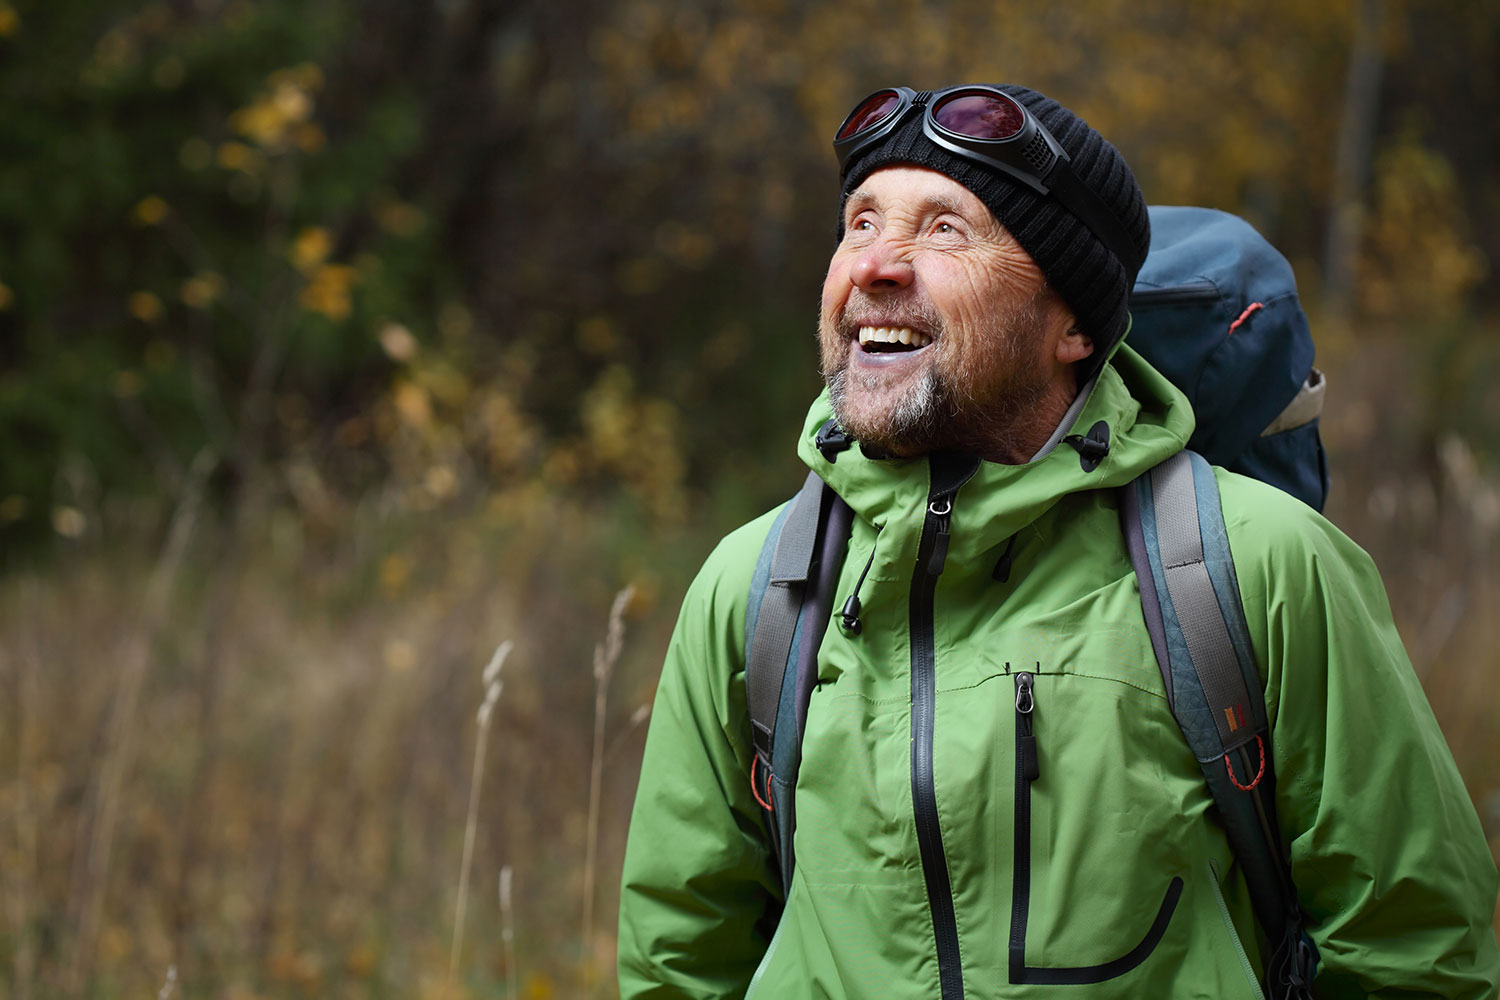 An older man in a green jacket and hiking gear, looking up and smiling with trees and a field in the background